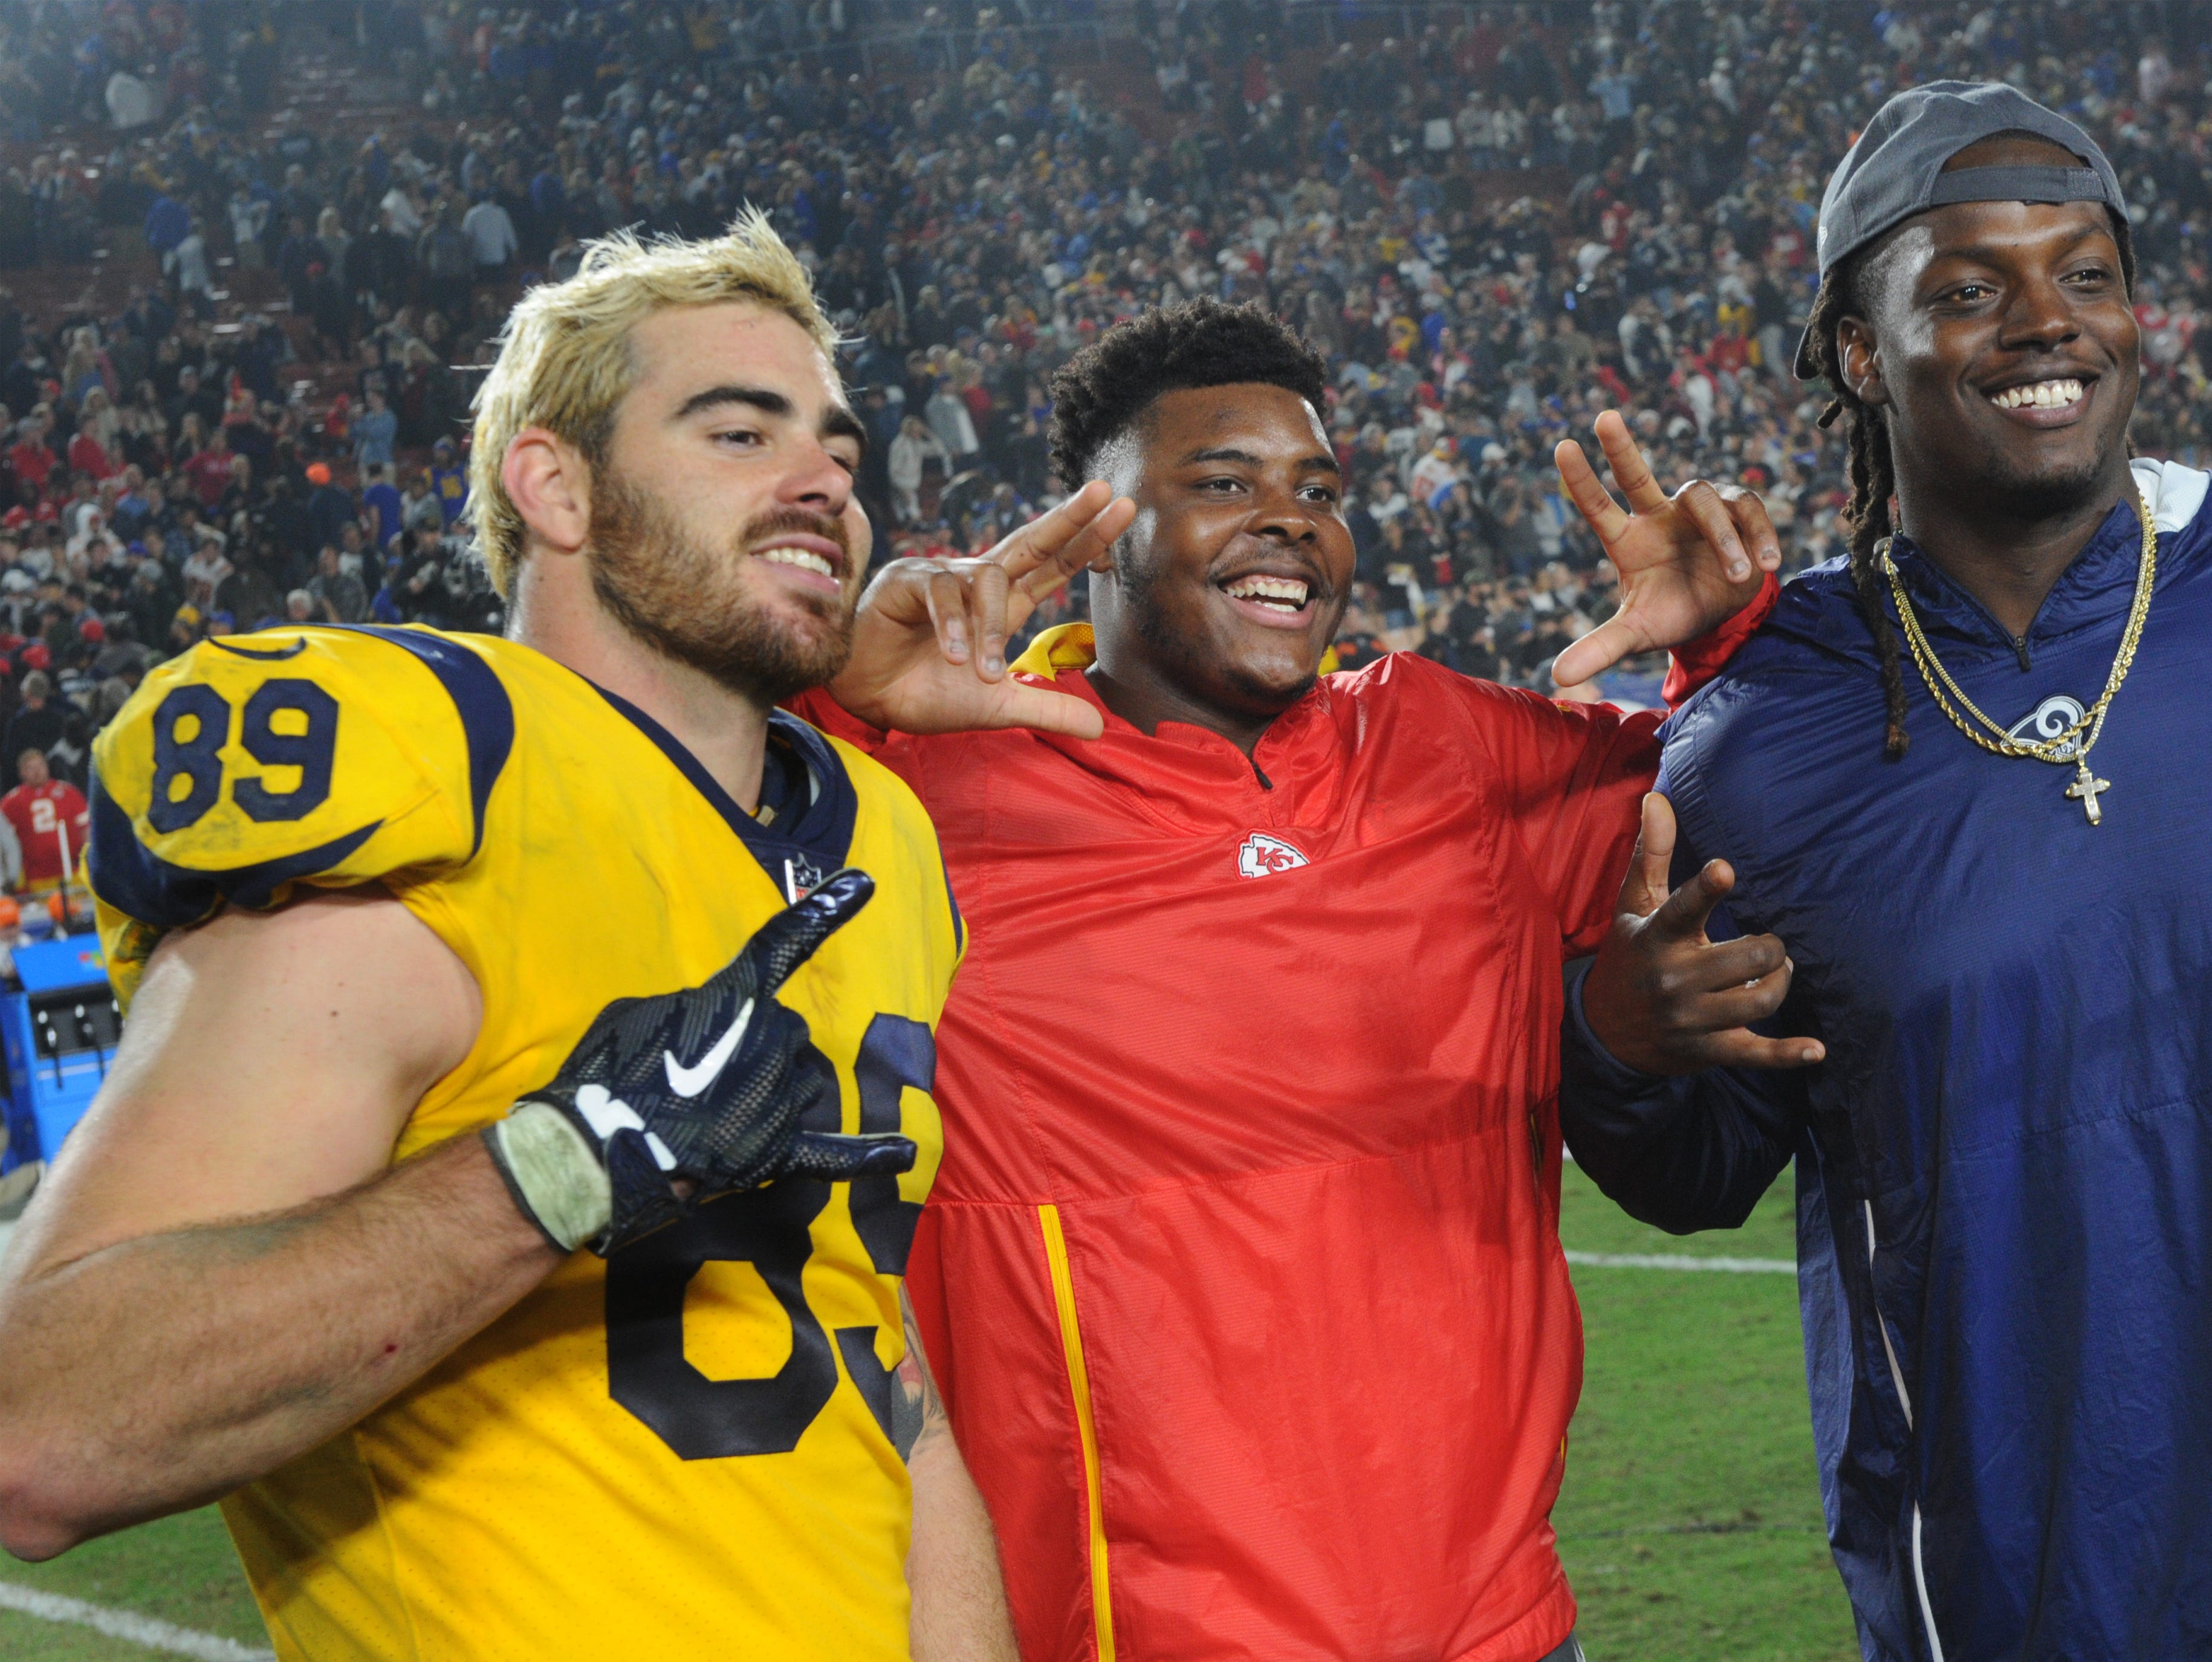 The Rams' Tyler Higbee, left, is all smiles with friends after the game.